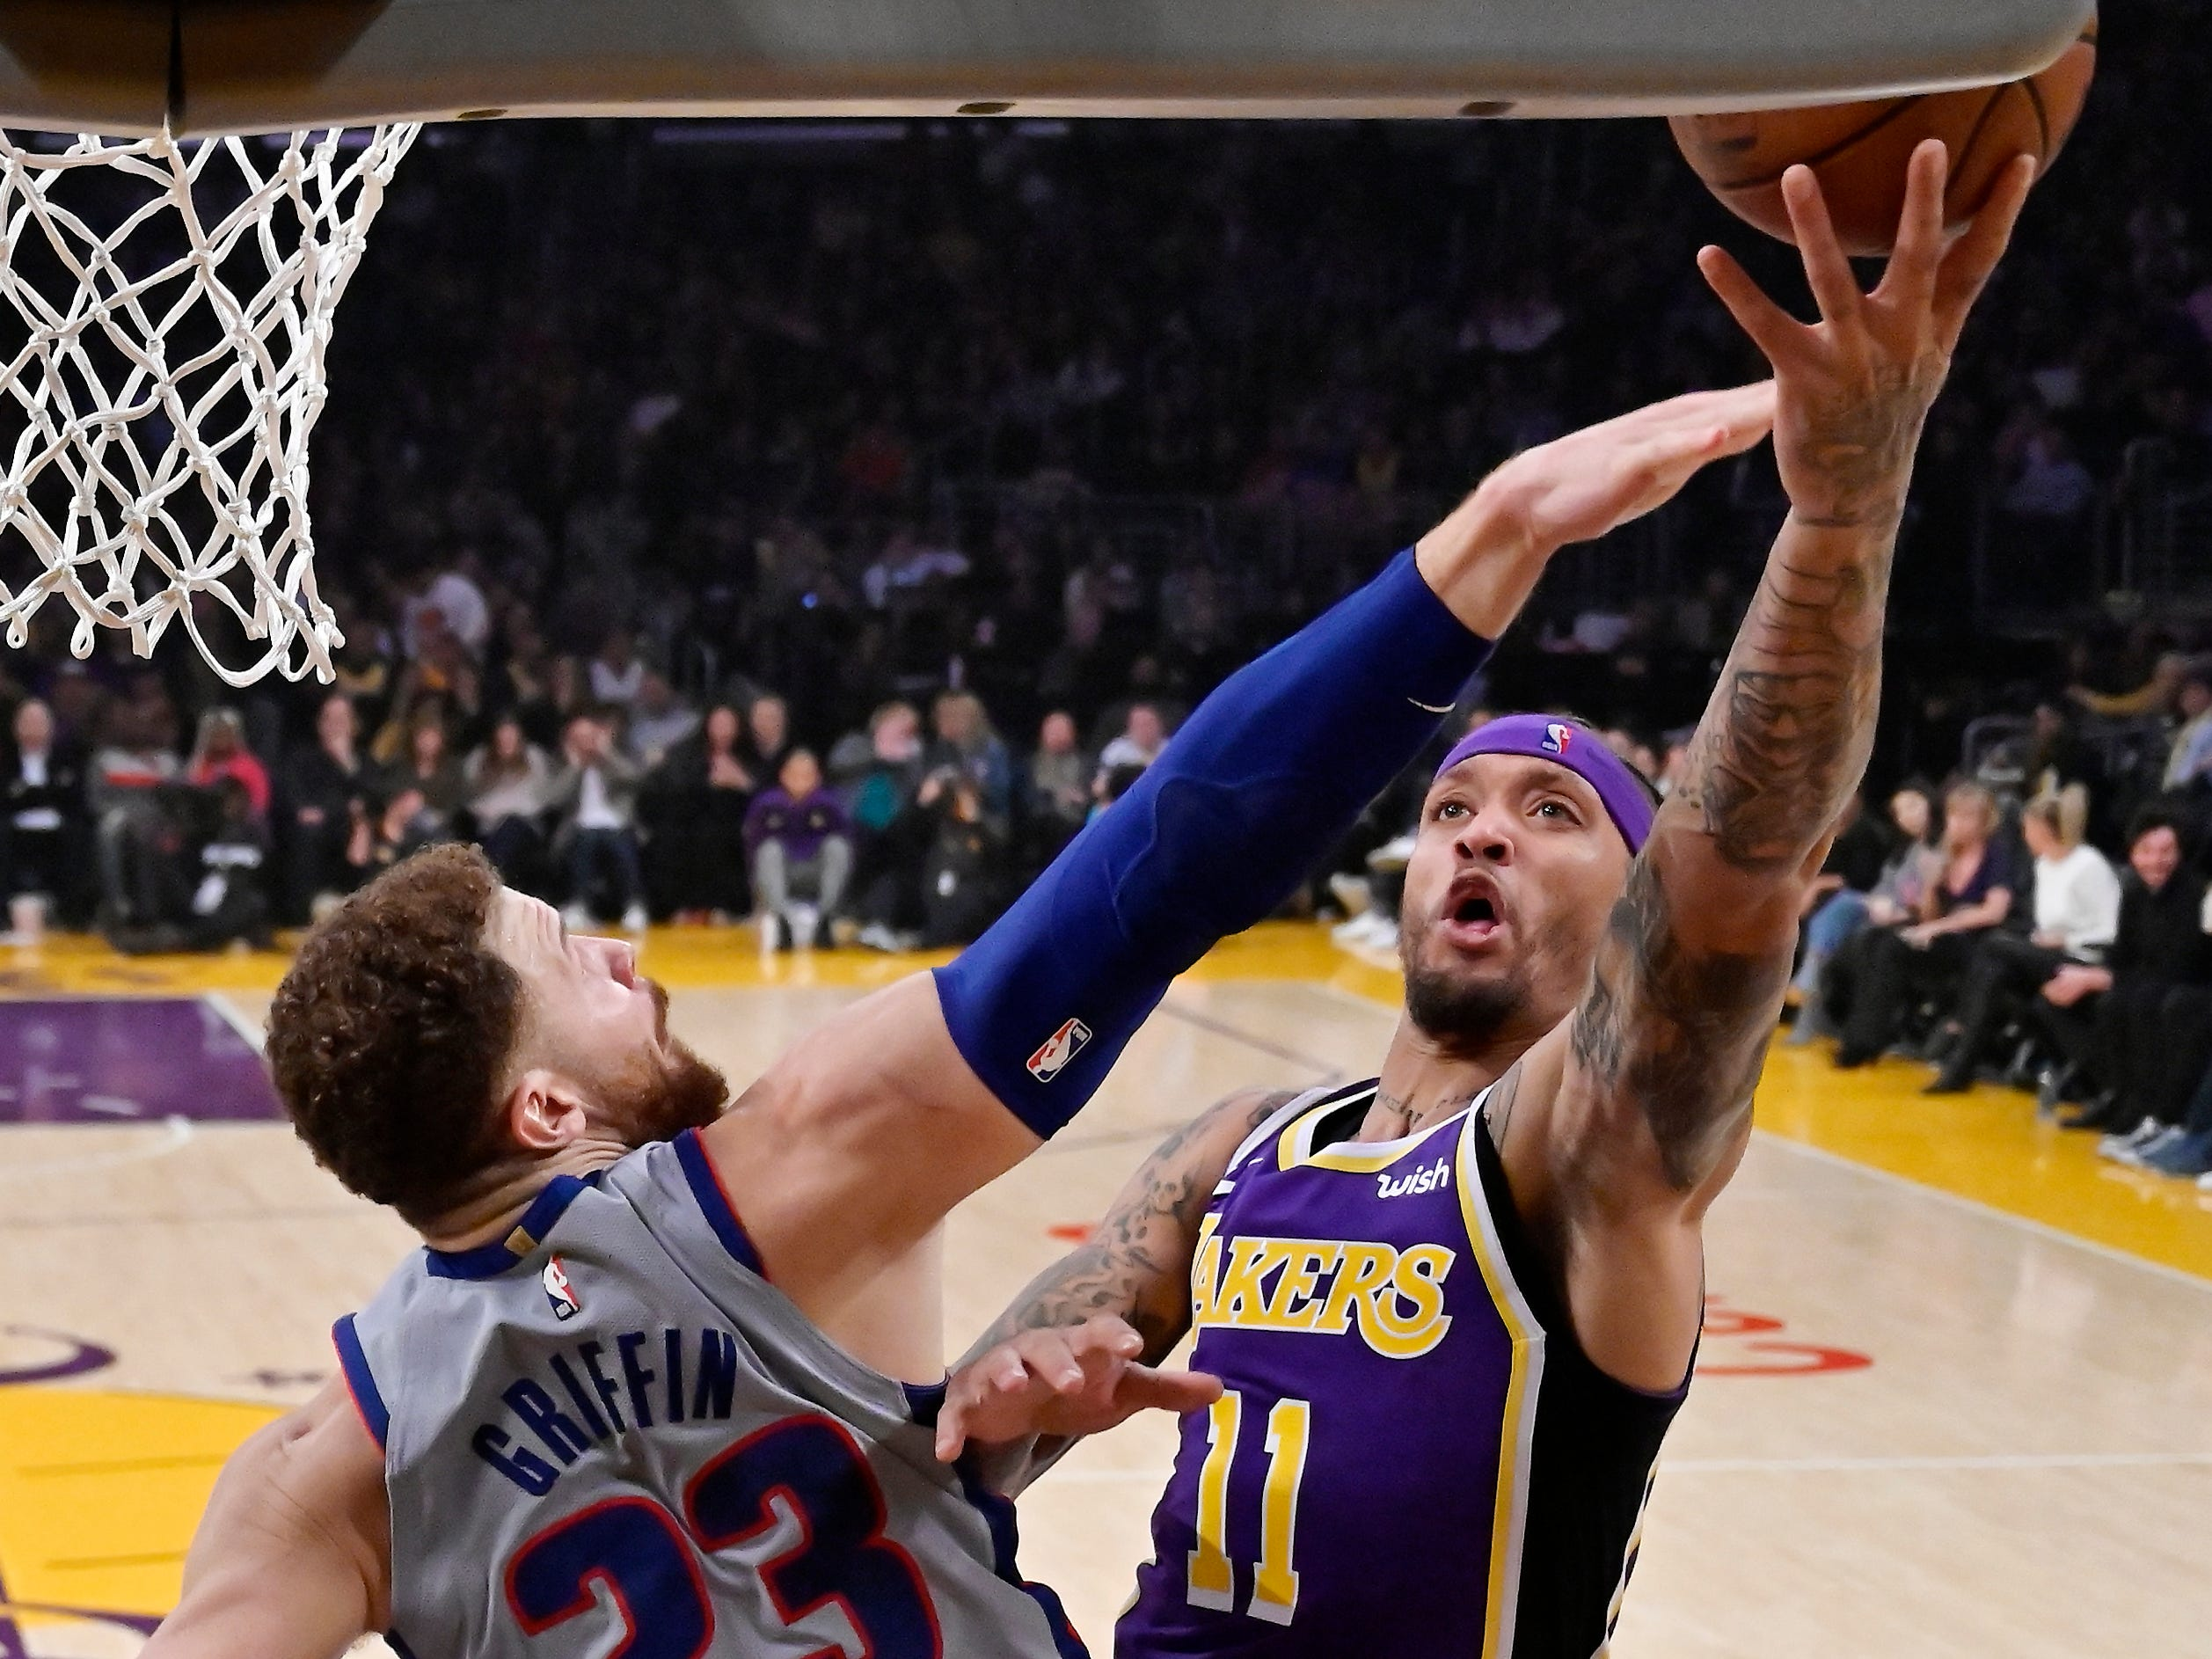 Los Angeles Lakers forward Michael Beasley, right, shoots as Detroit Pistons forward Blake Griffin defends during the first half.